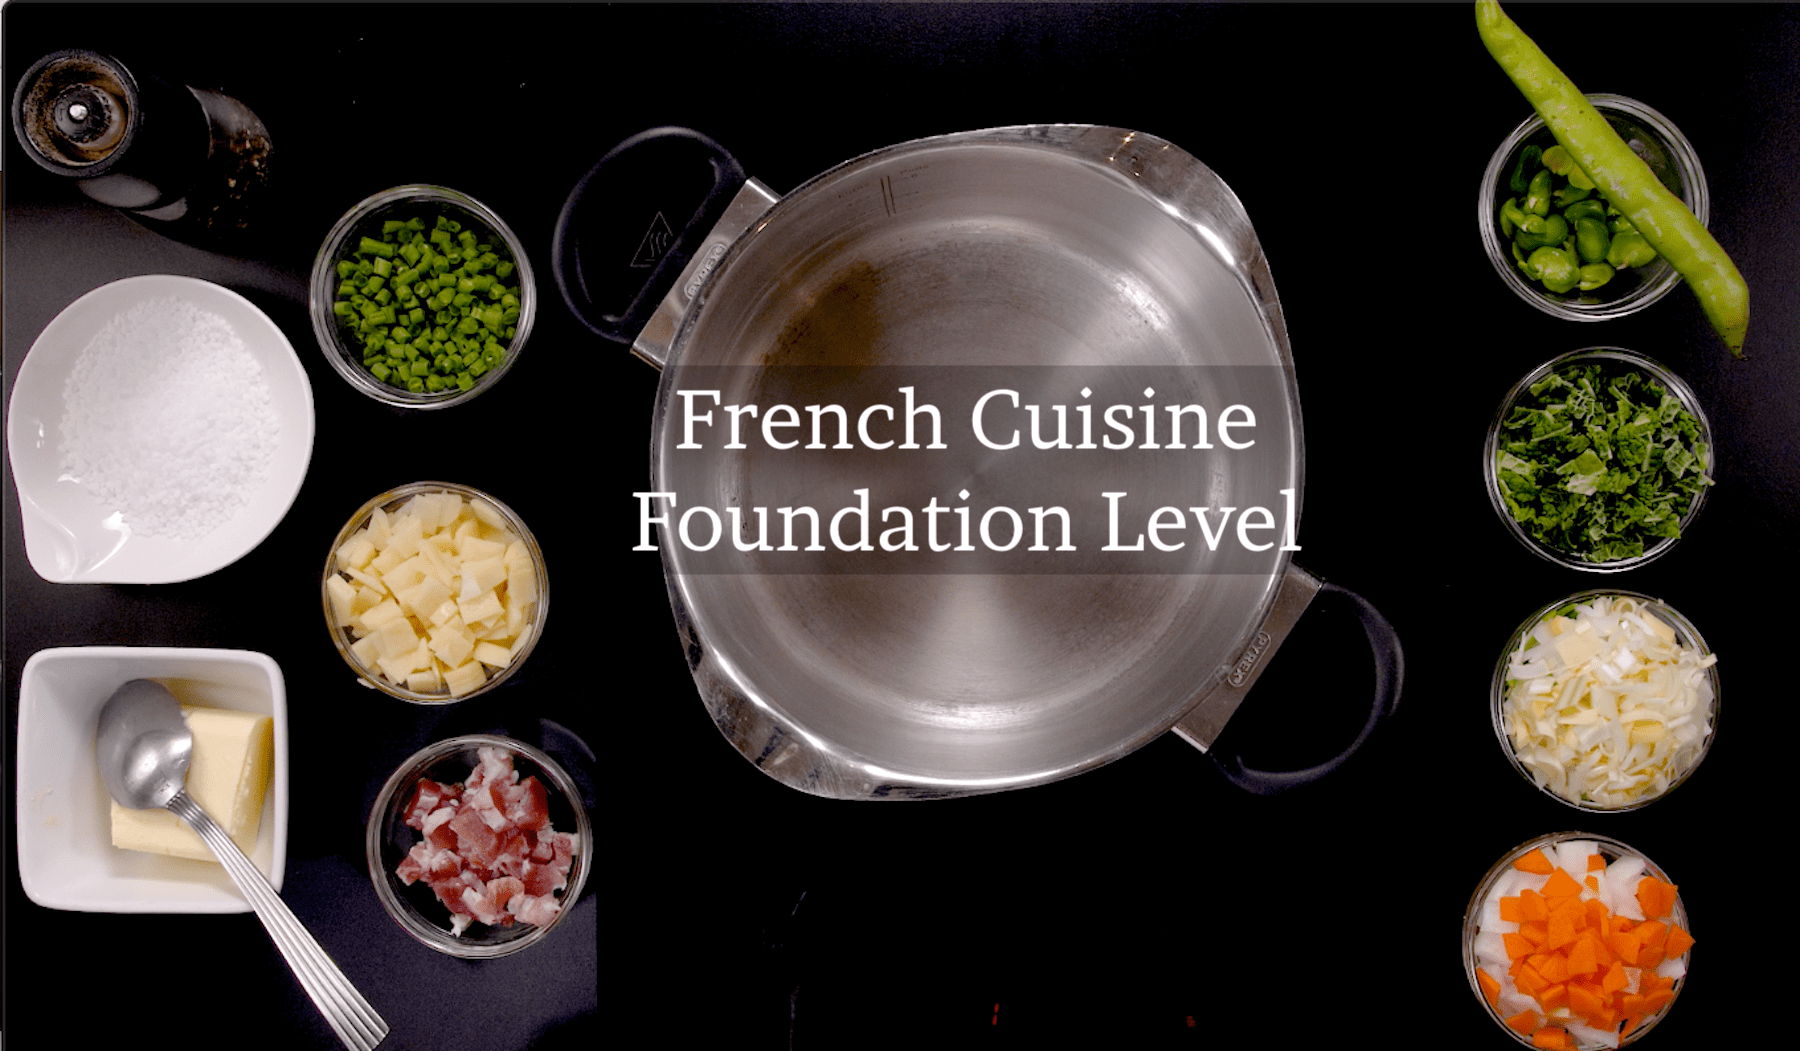 French Cuisine Foundation Level